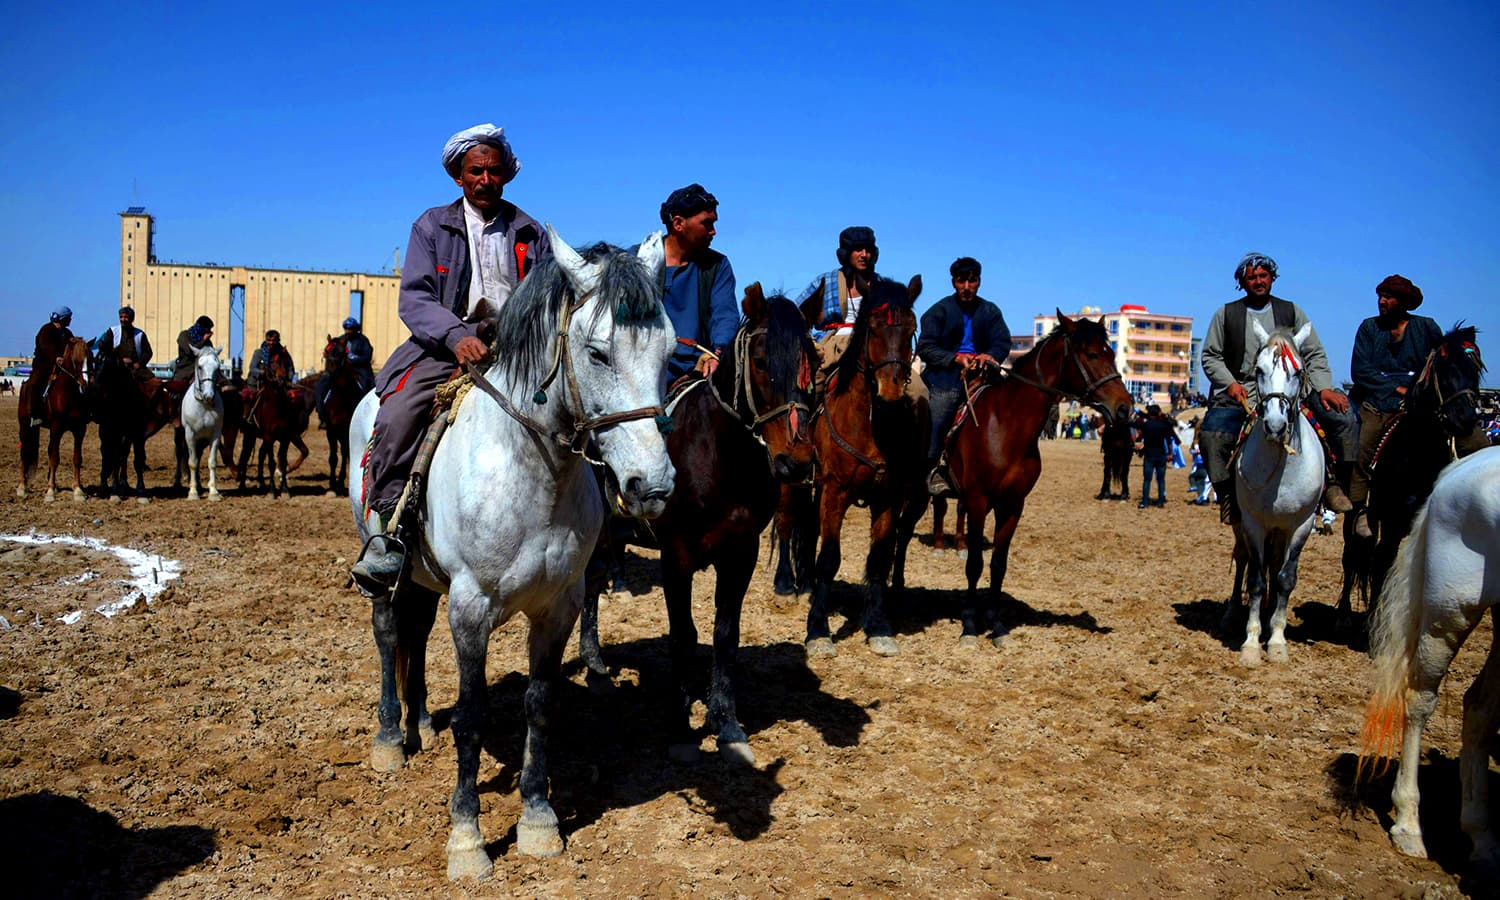 Afghan horsemen look on as others compete for a veal carcass during a game of buzkashi during celebrations for the Persian New Year. ─ AFP